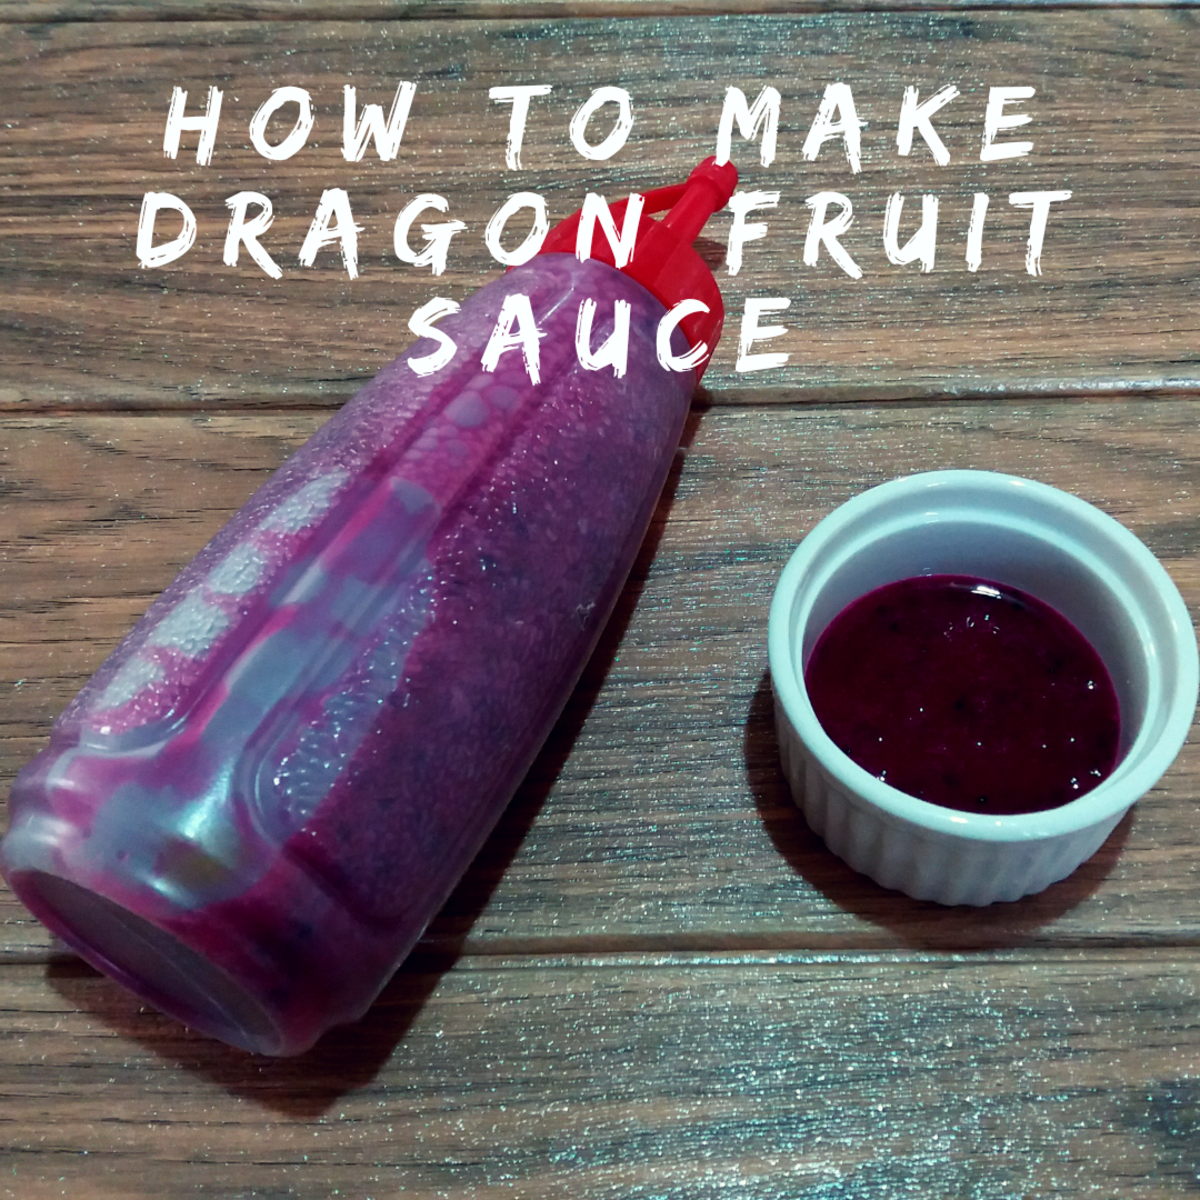 Learn how to make dragon fruit sauce at home